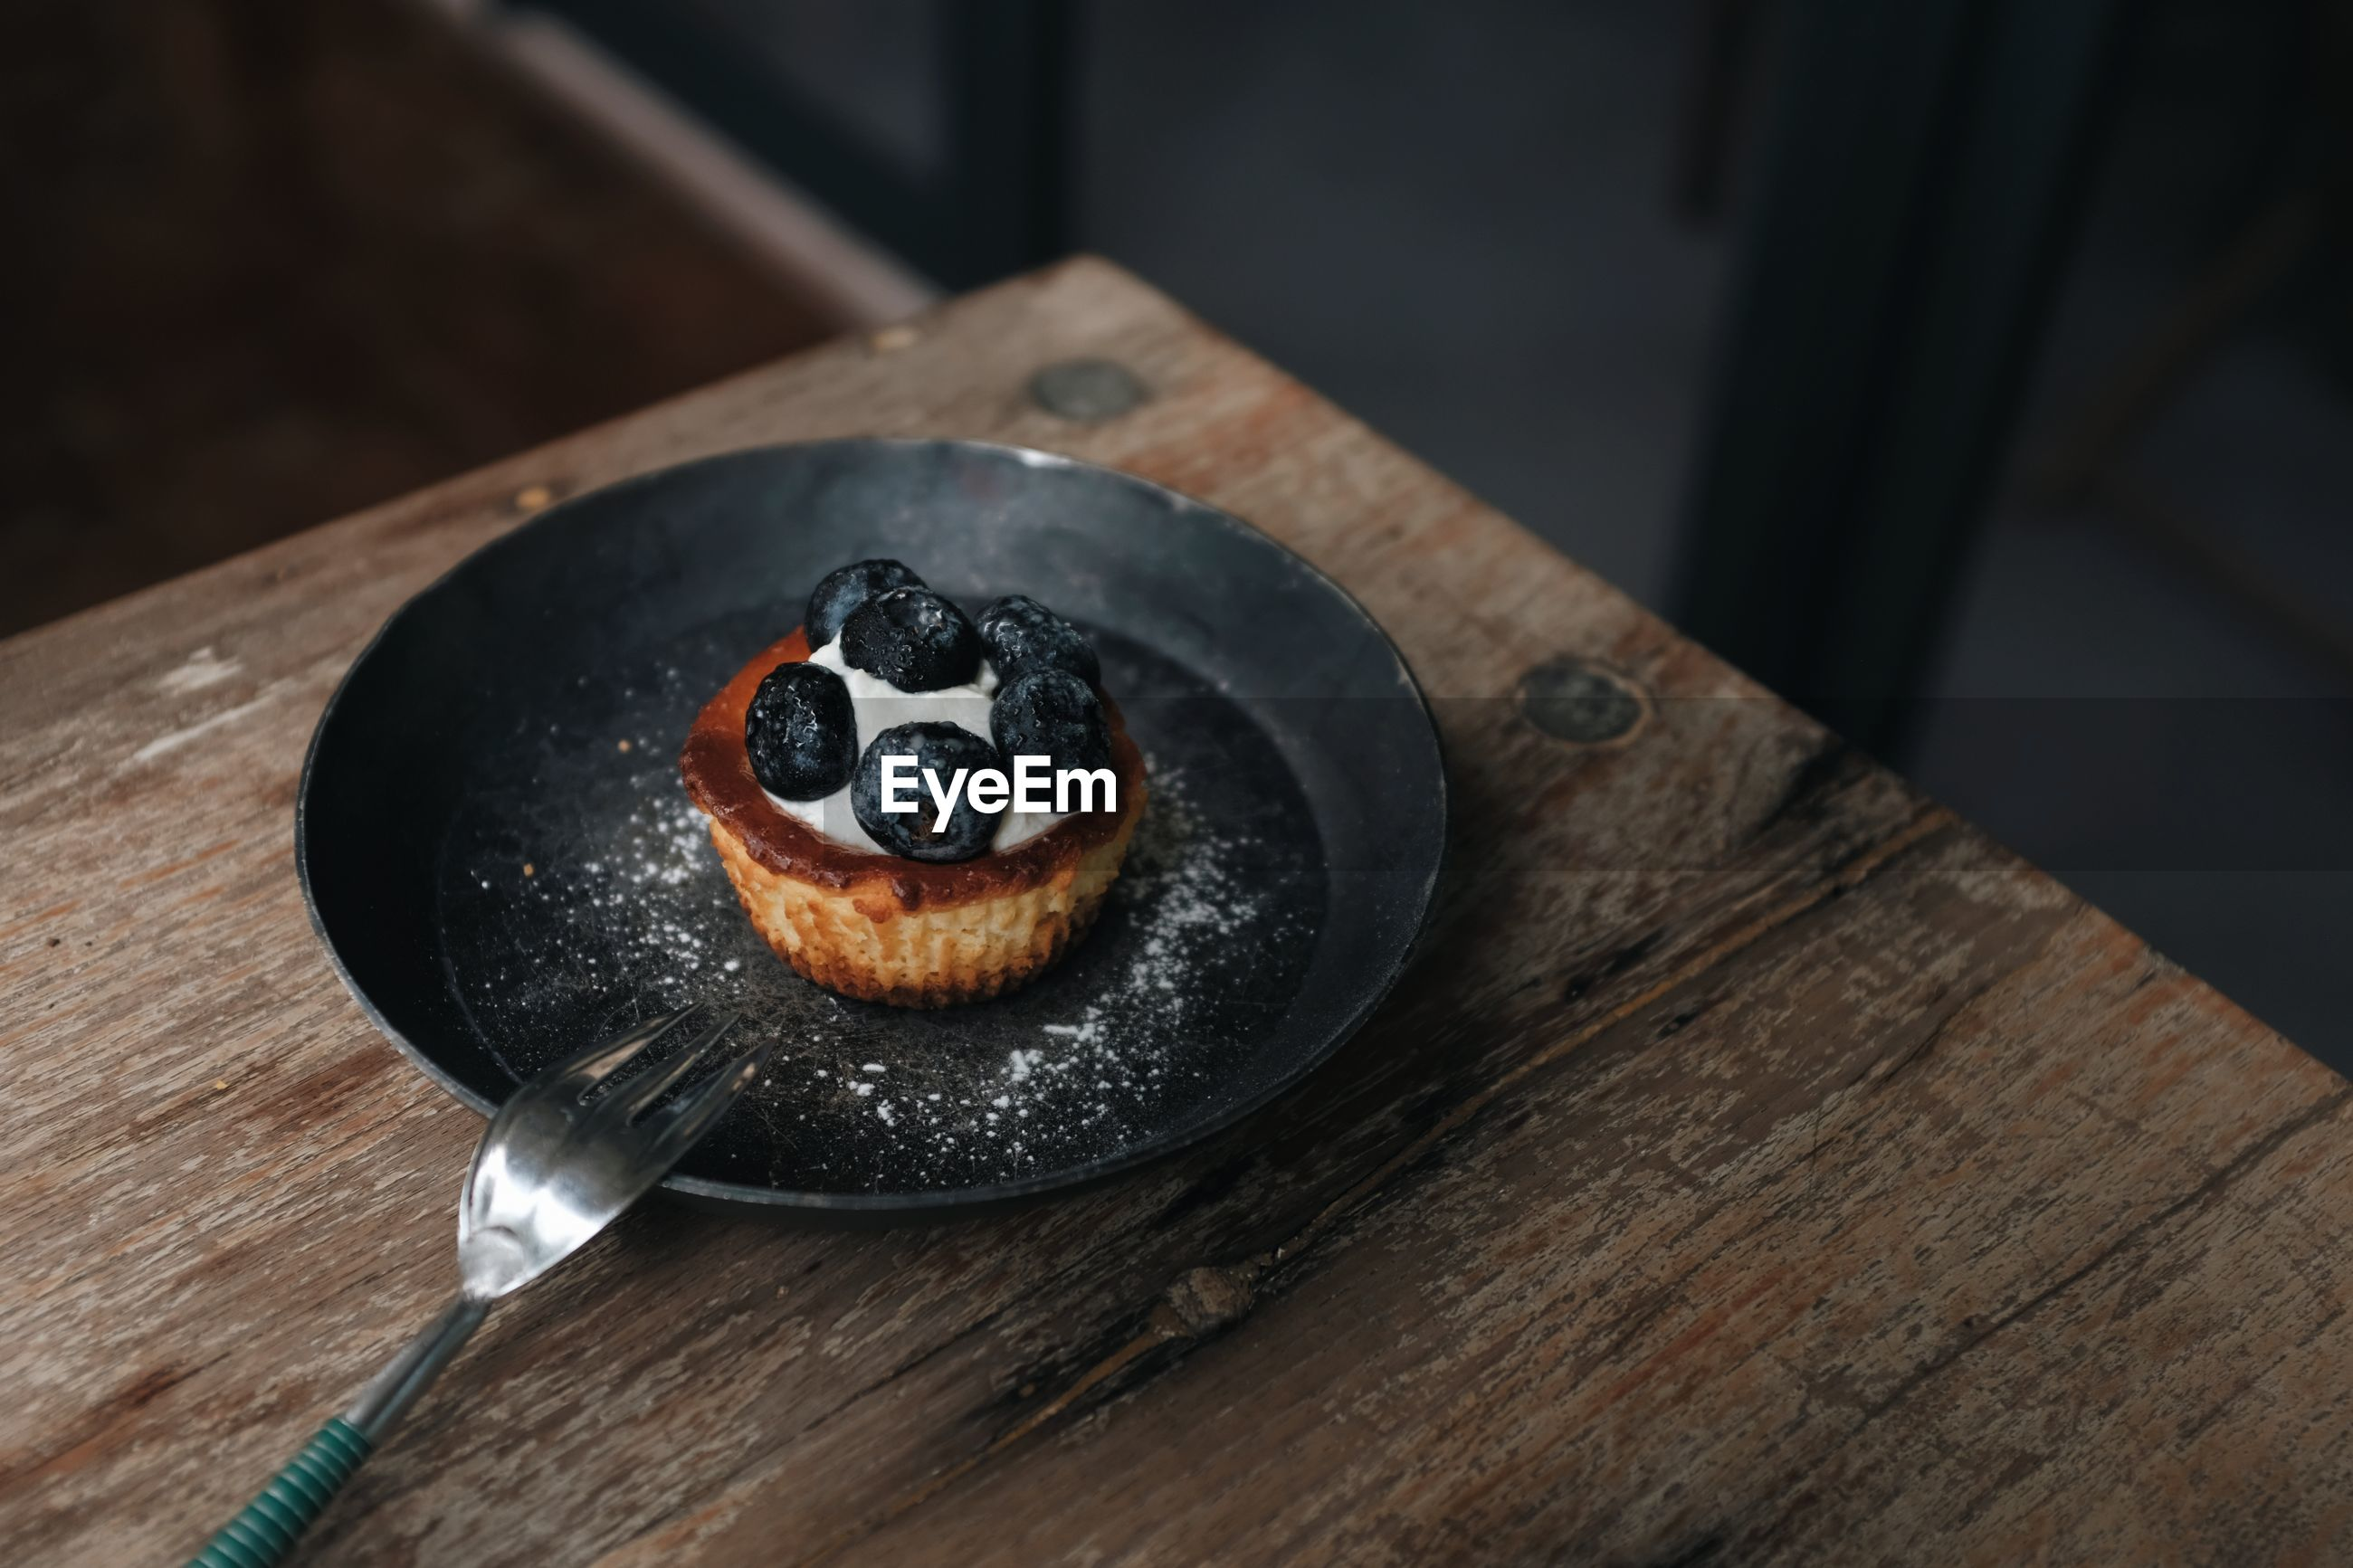 A close up view of a blueberry cheesecake on a black plate placed on a wooden table in a coffee shop